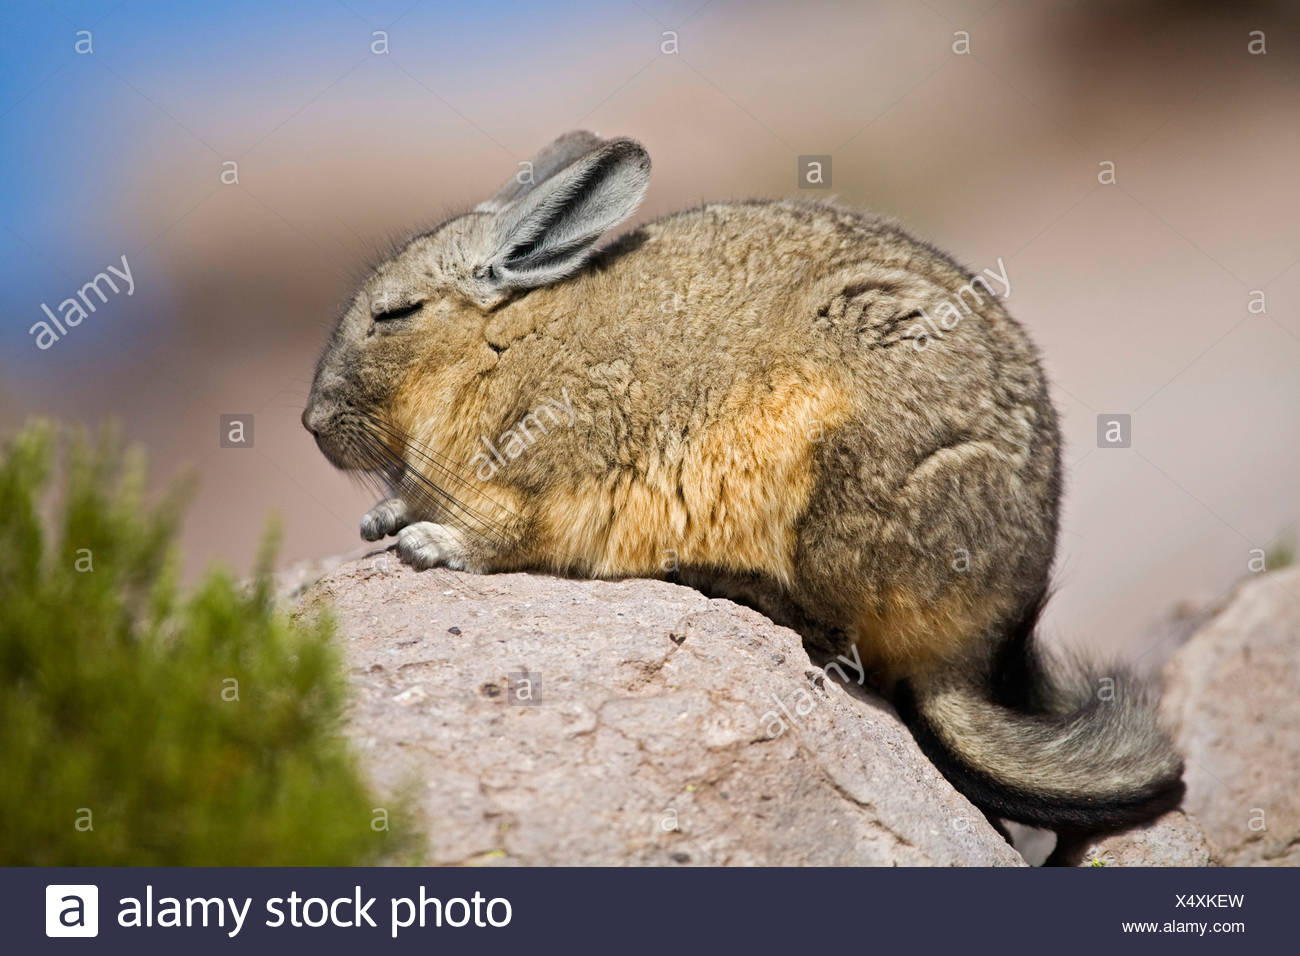 Viscacha (Lagidium) relatives from the Chinchillas at the rocks, Conaf station Las Cuevas, national park Lauca, Chile, South Am - Stock Image